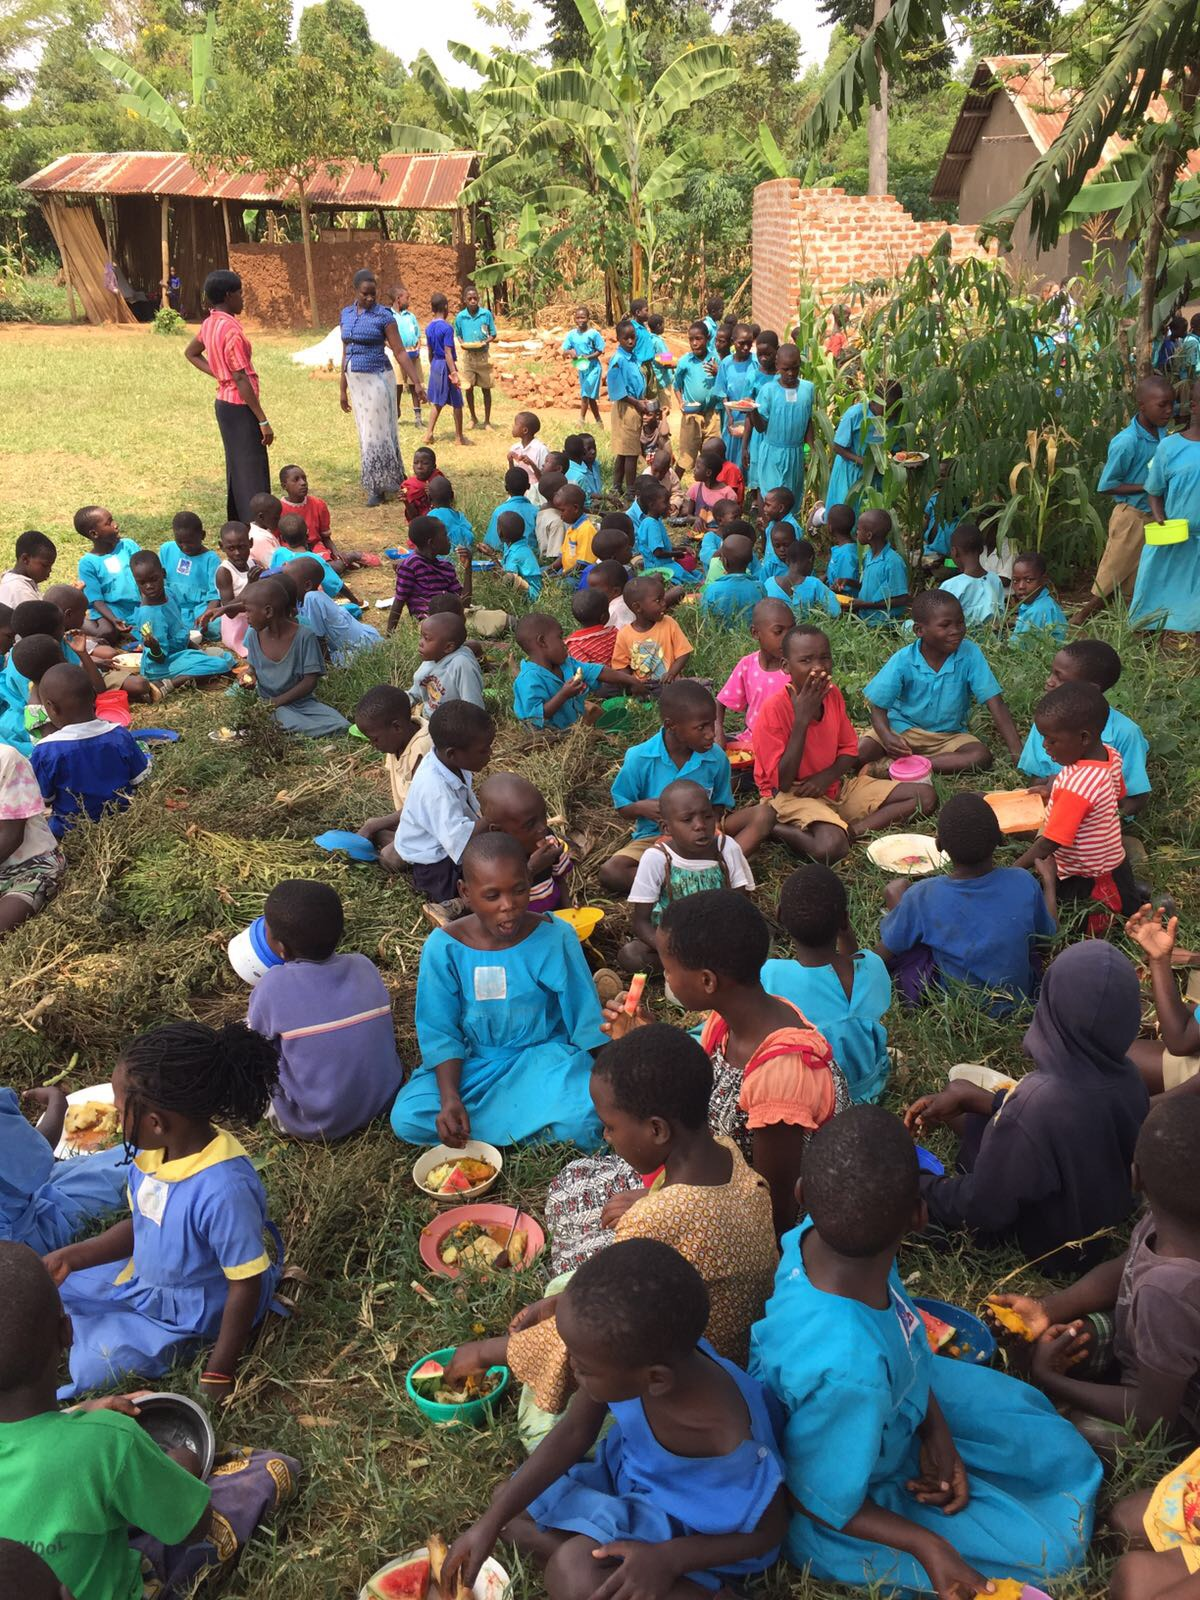 St. John's school children ate a nutritious lunch, harvested and prepared by our interns on-site at the school garden and kitchen. It was a powerful moment for all, as our East Africa team has been working towards this goal for some time.